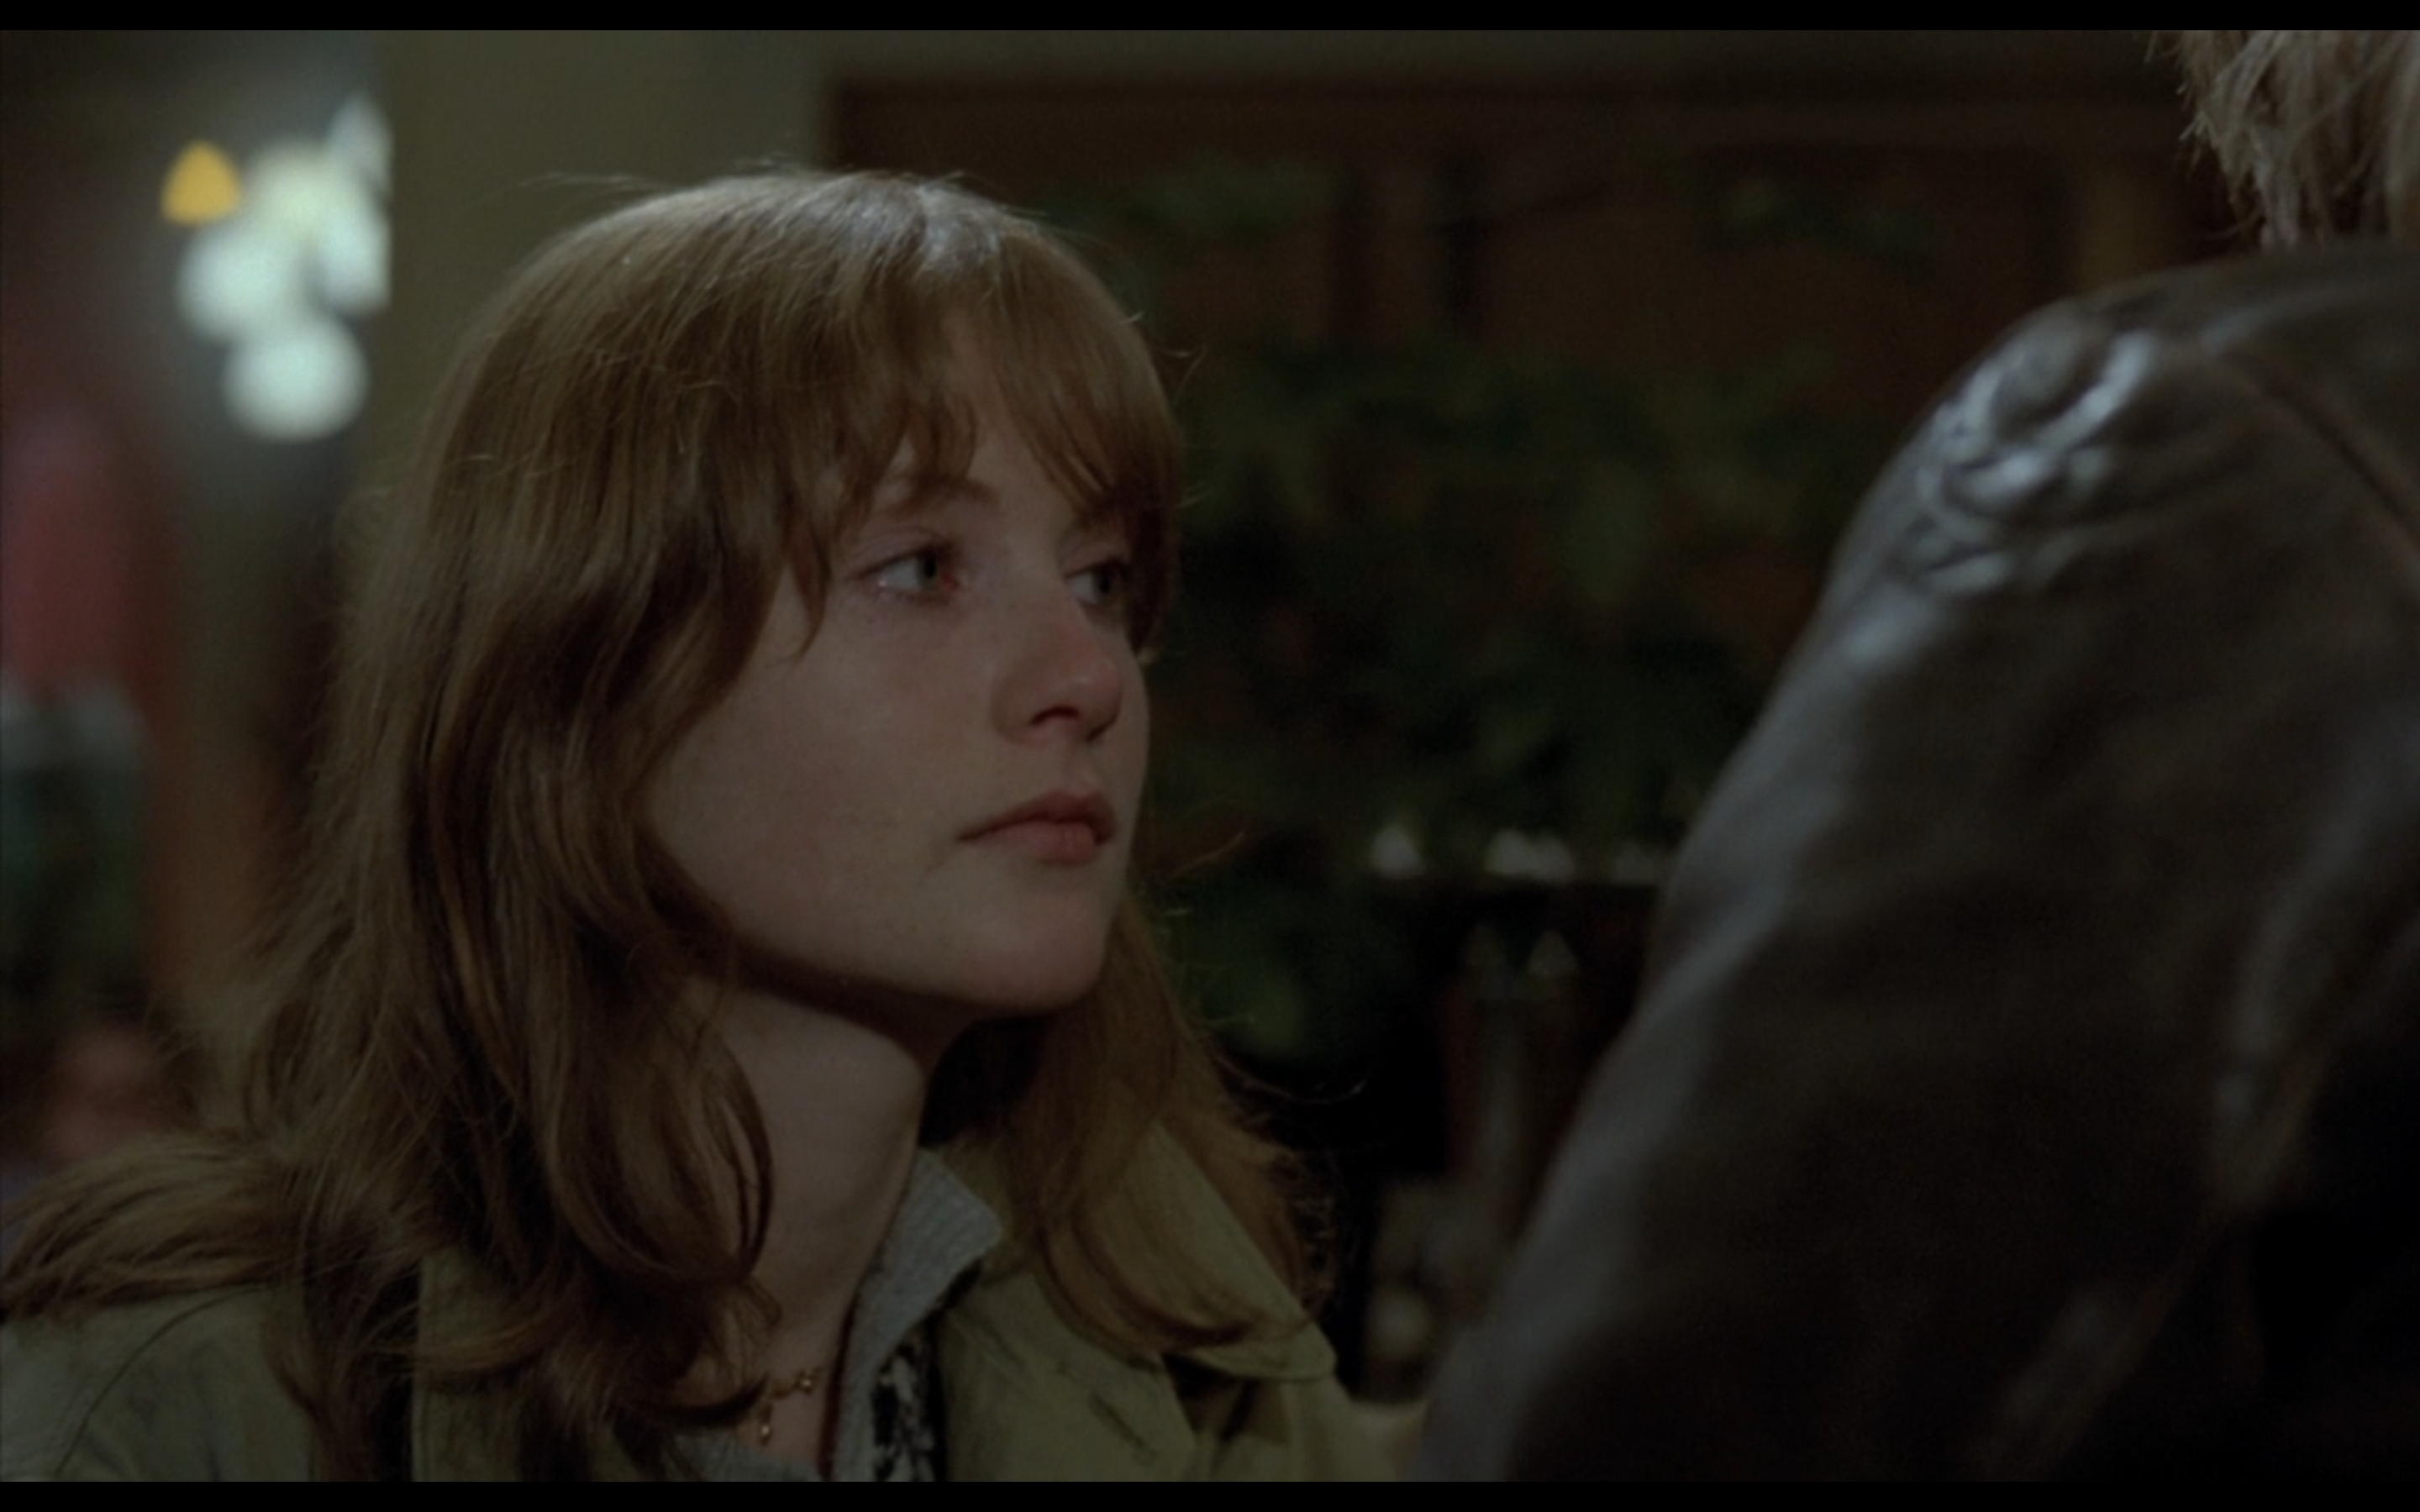 Loulou by Pialat, Isabelle Huppert